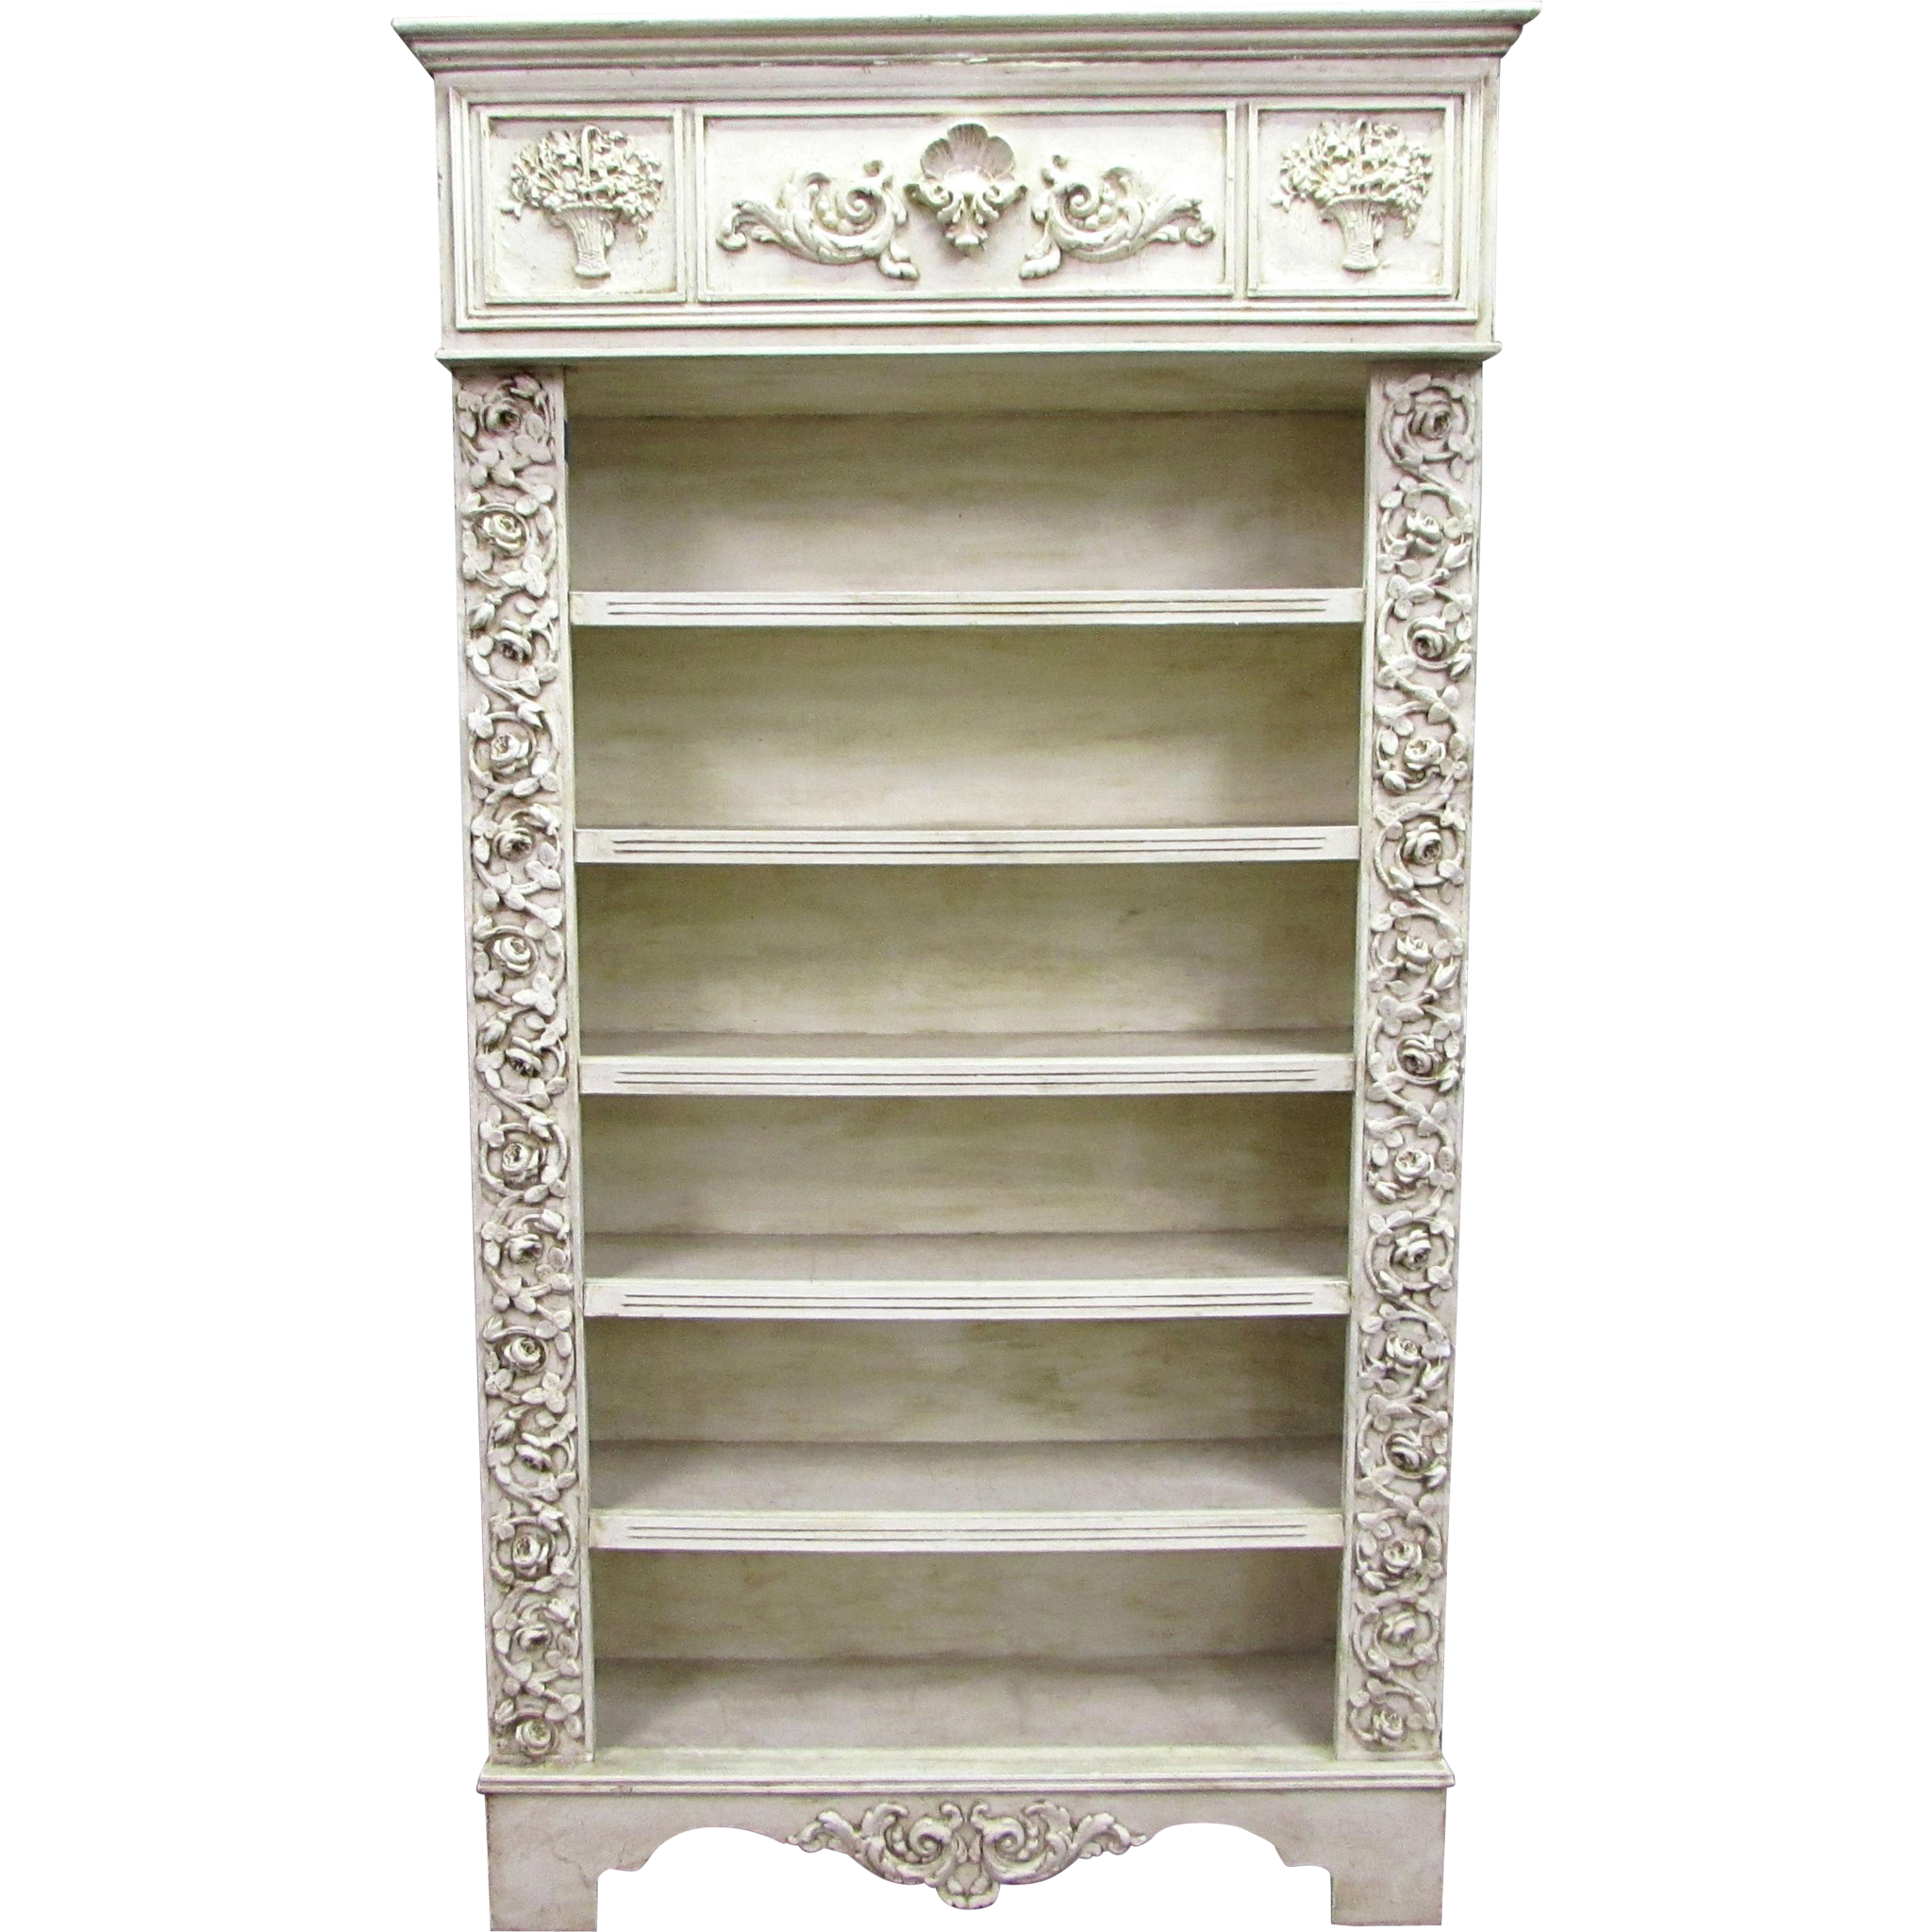 Antique wooden carved floral bookcase with gesso details